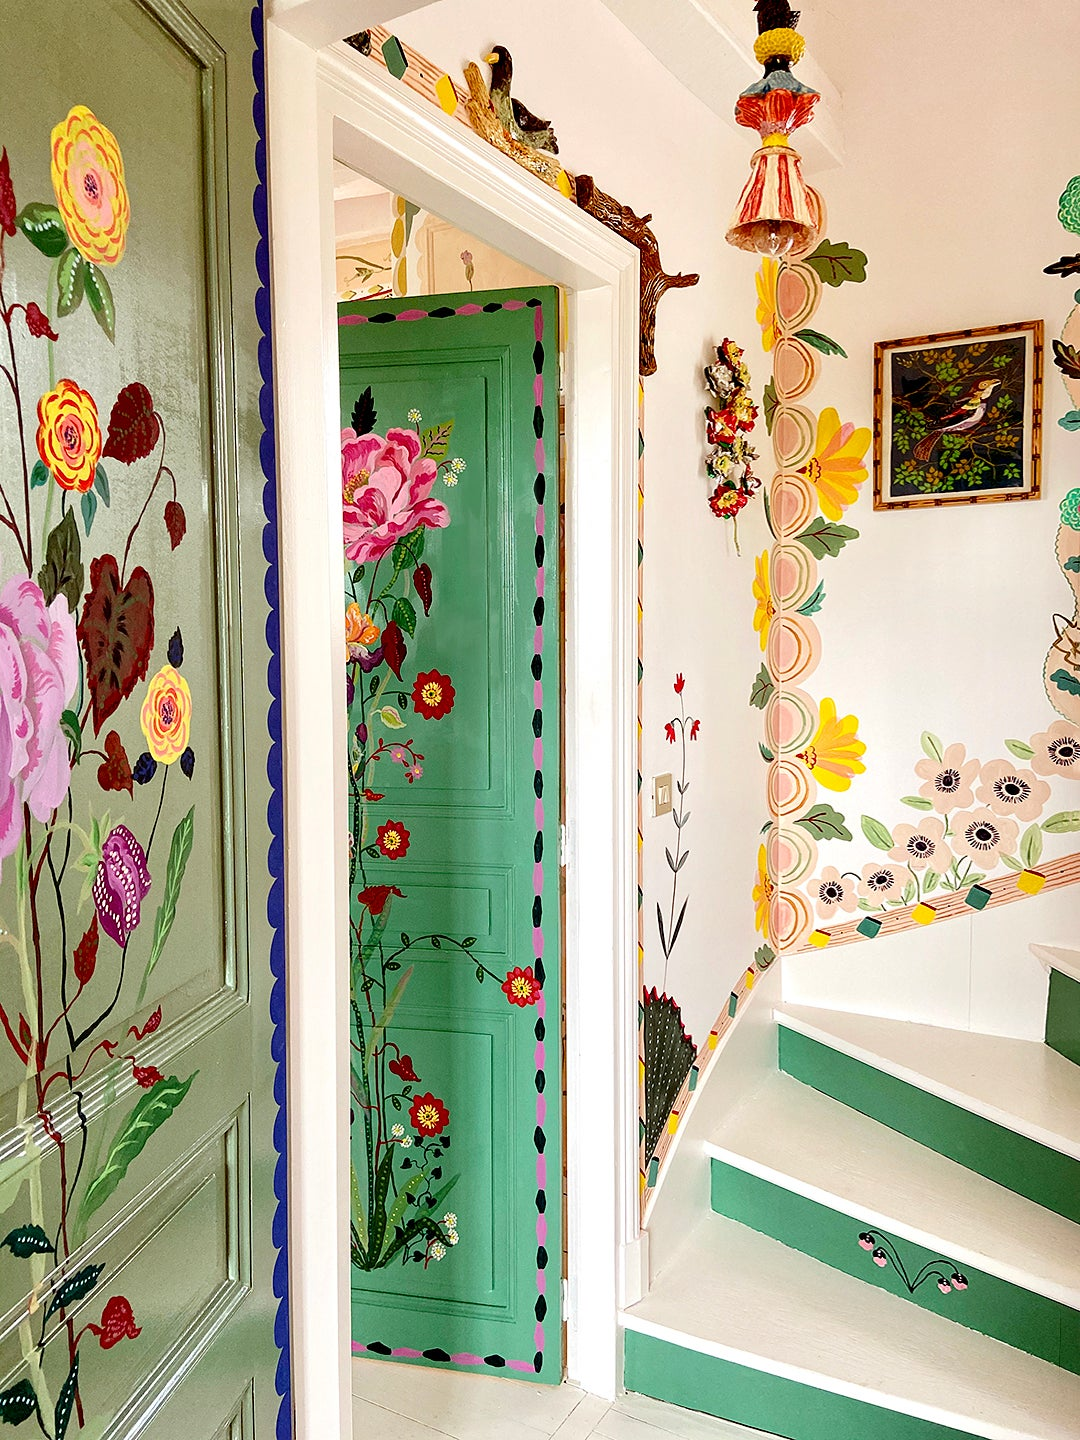 Floral-painted staircase